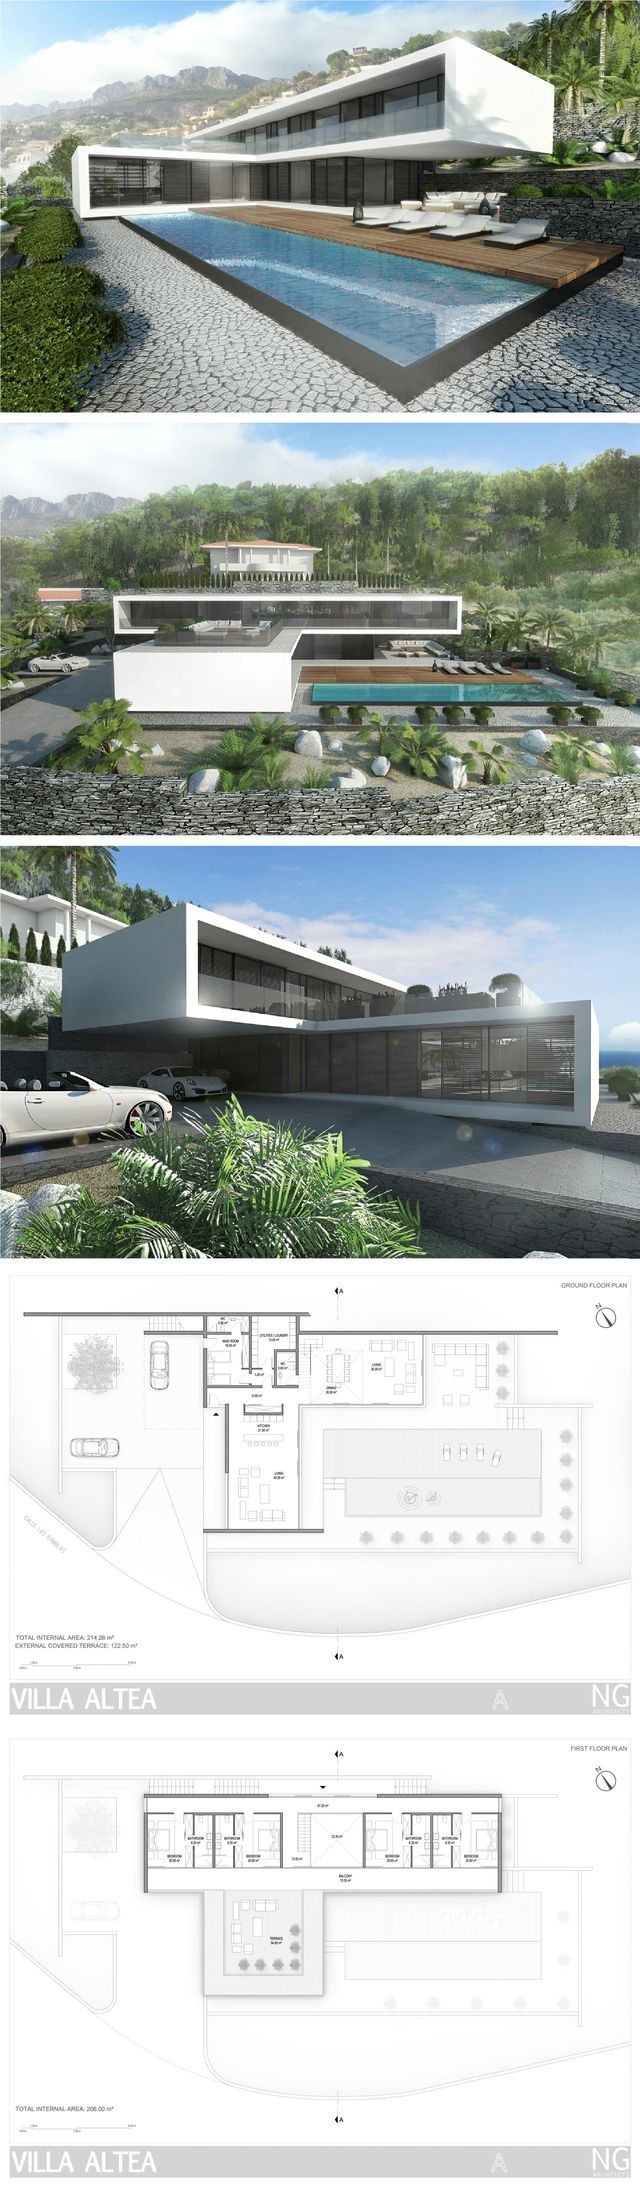 Modern villa in altea spain by ng architects lithuania